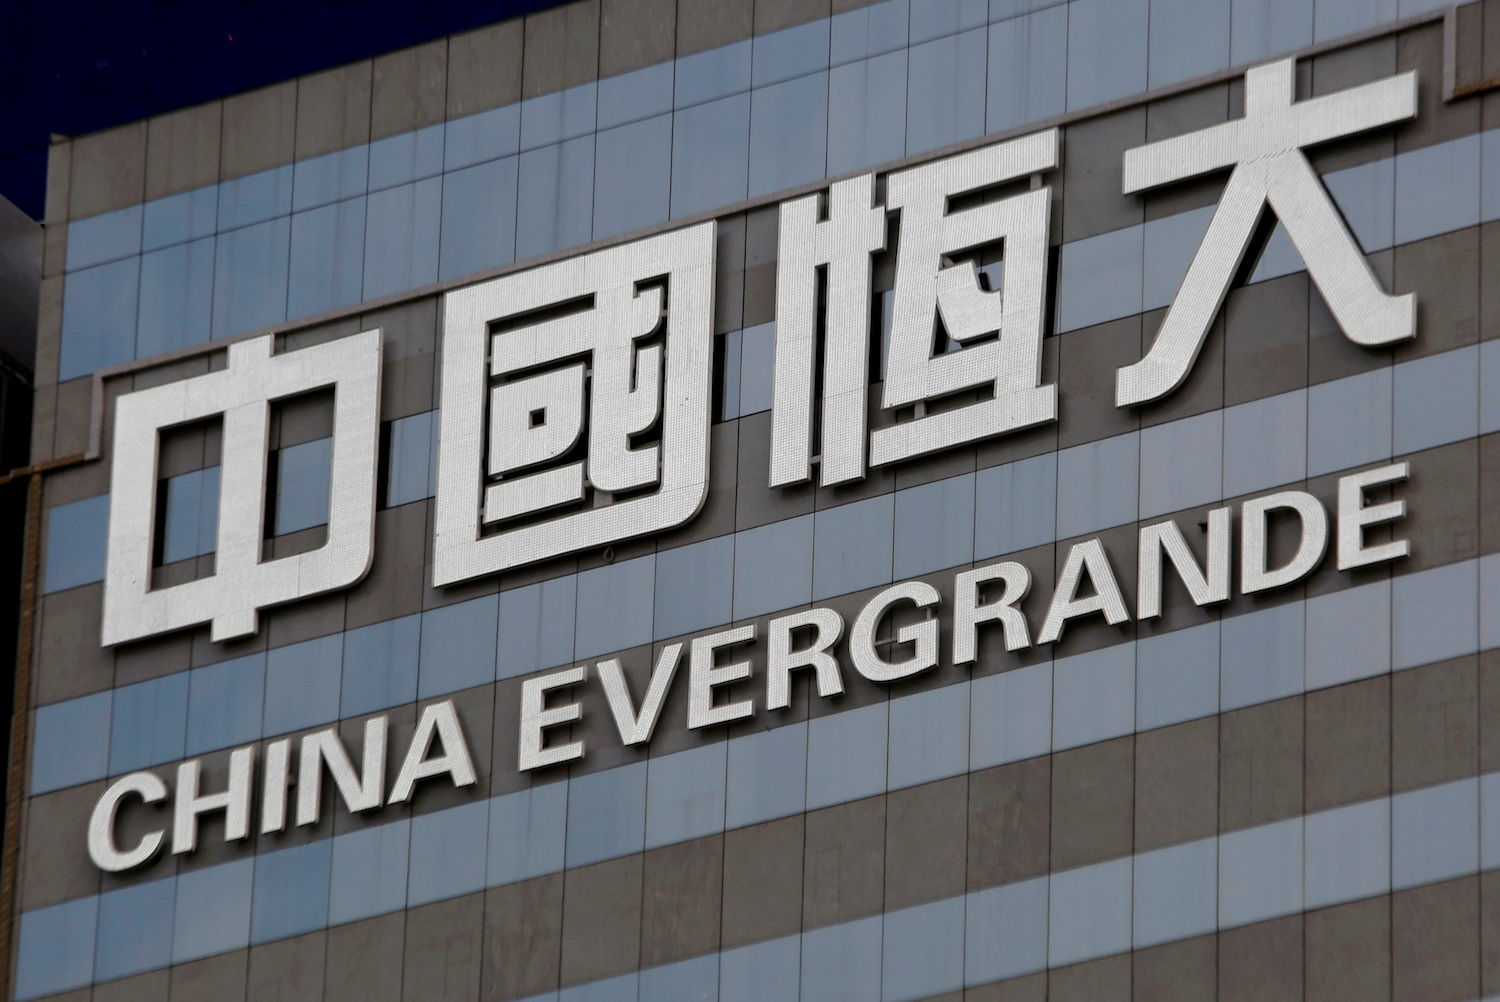 Higher funding costs plague China Evergrande's bid to shed debt